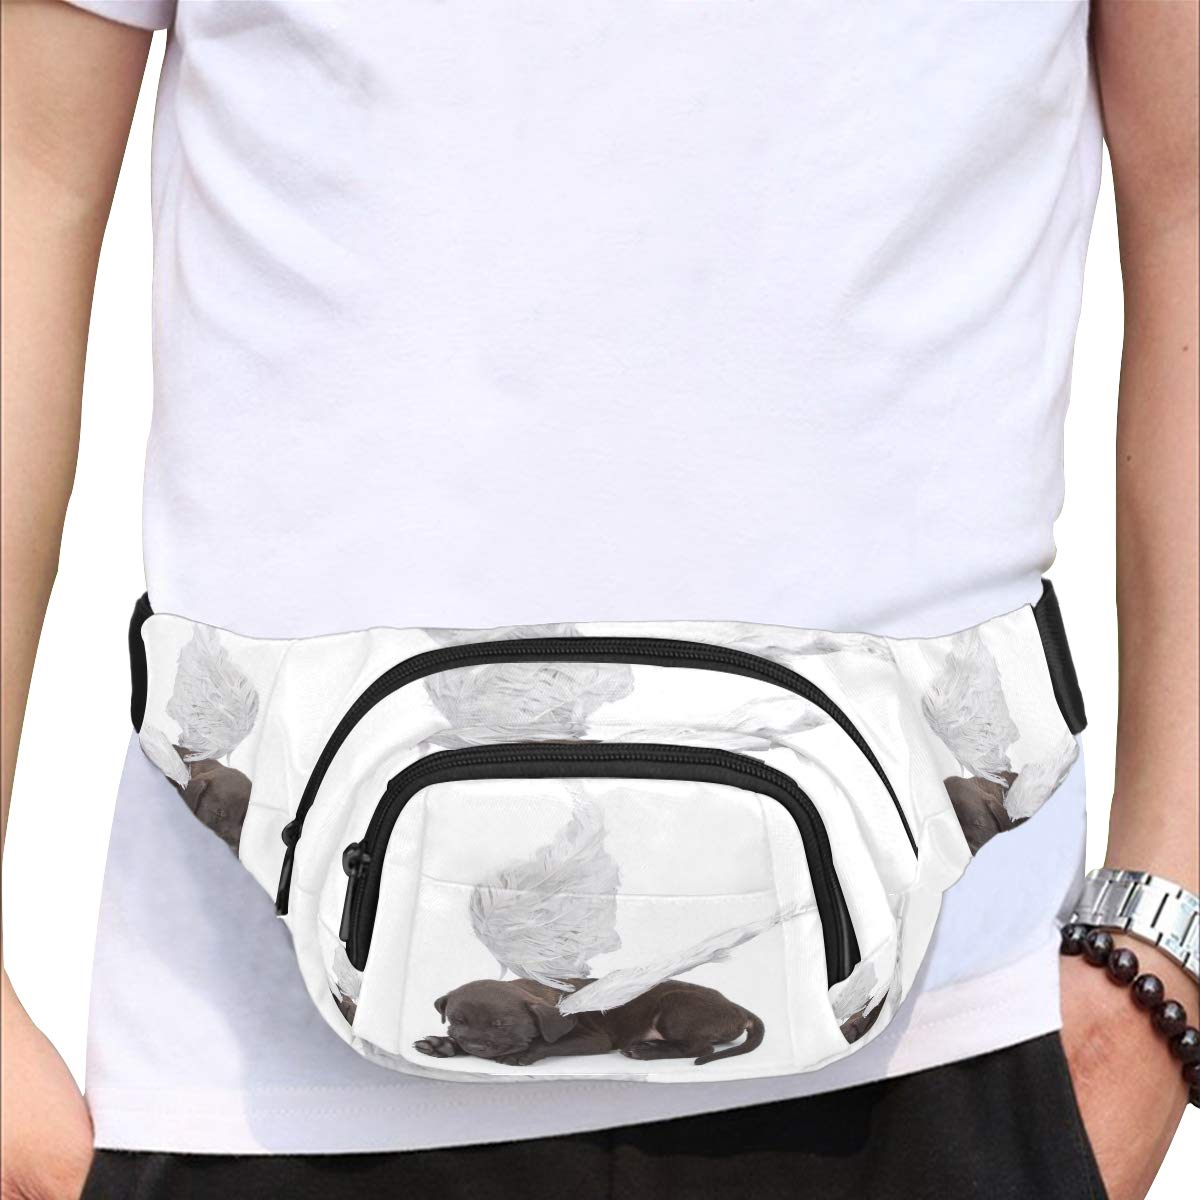 Fantasy Puppy With Angel Wings Fenny Packs Waist Bags Adjustable Belt Waterproof Nylon Travel Running Sport Vacation Party For Men Women Boys Girls Kids